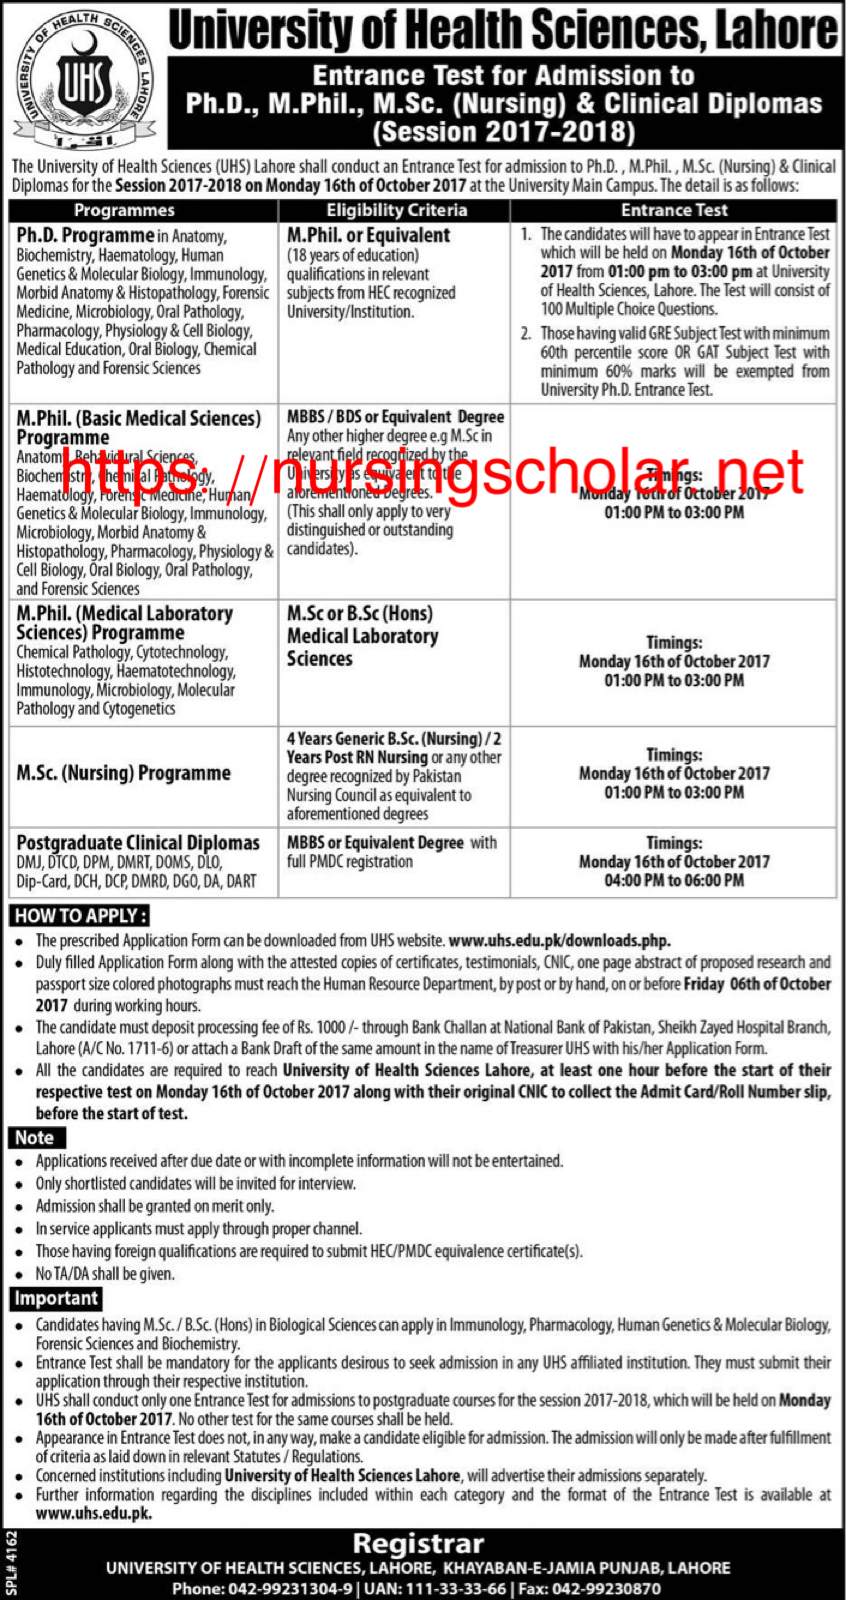 MSN admission in Univeristy of Health Sciences Lahore